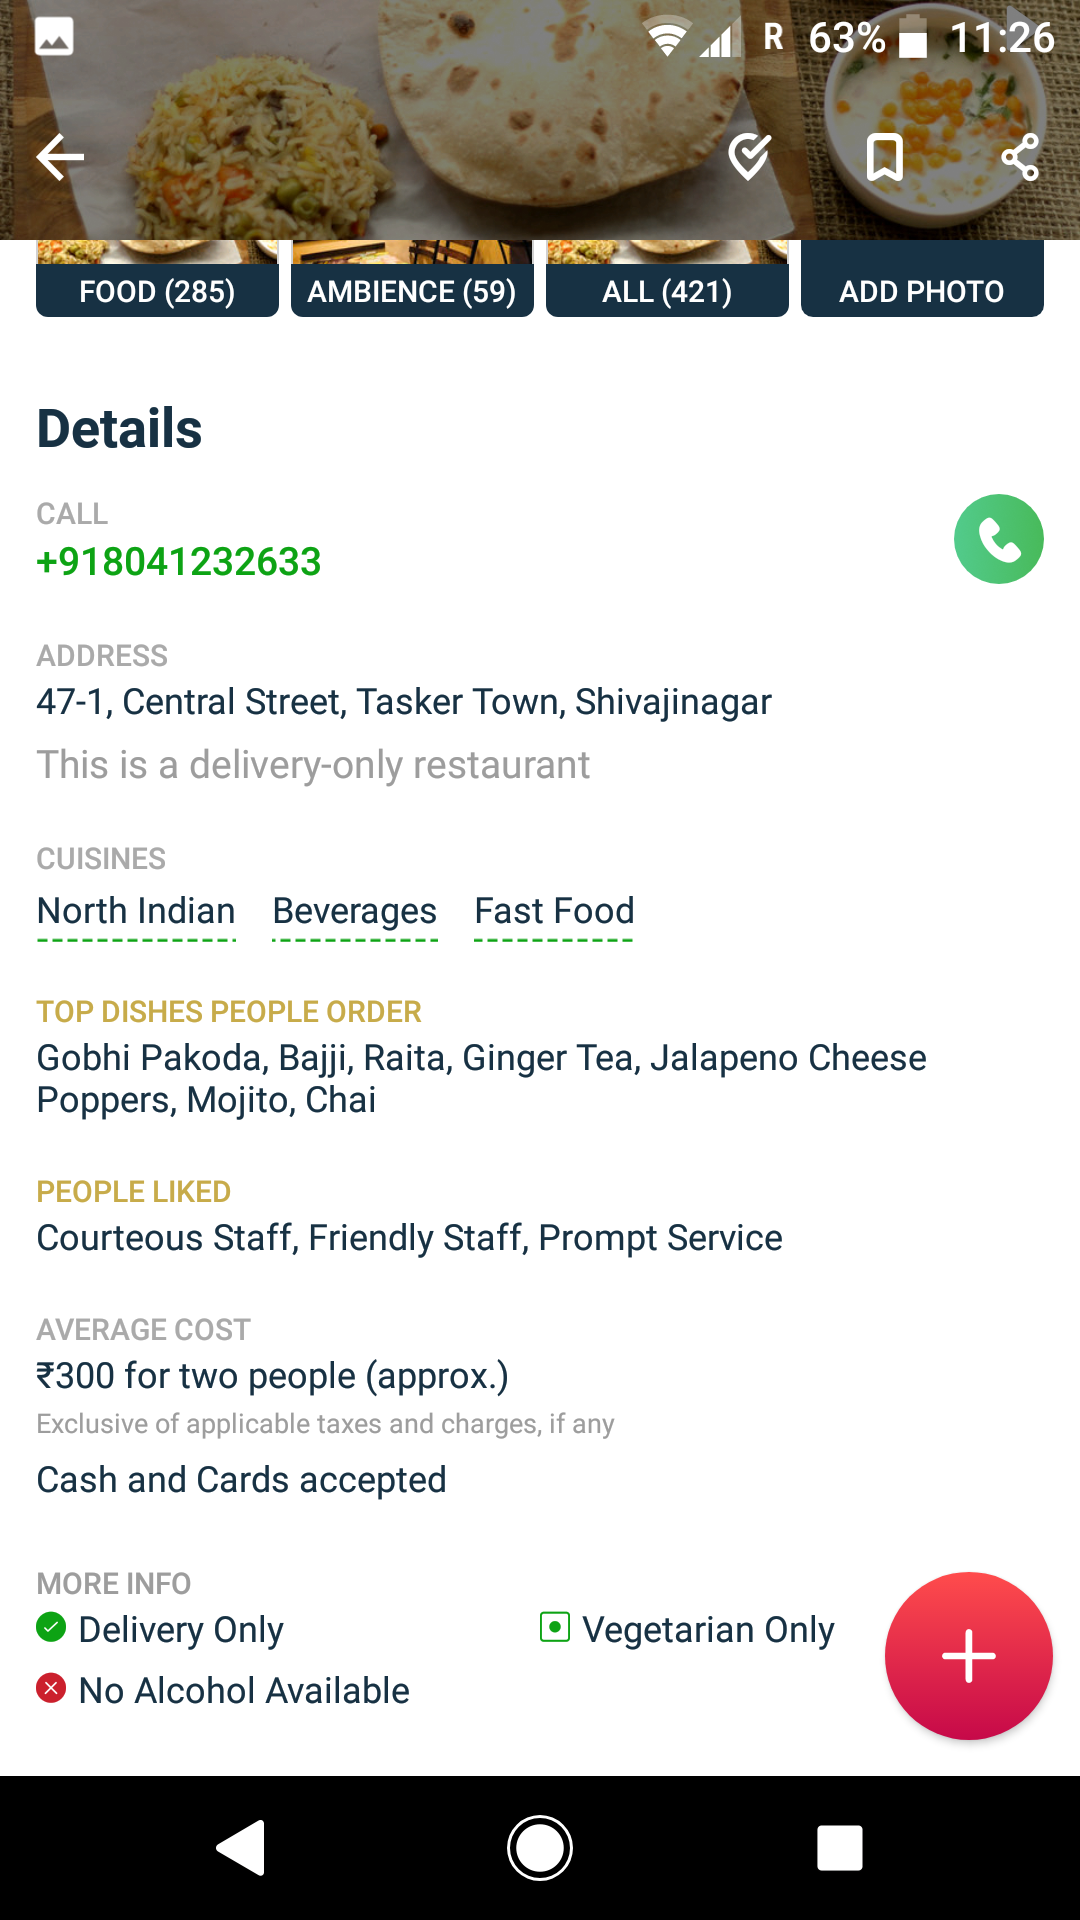 Zomato's Before vs After UX Critique - UX Planet